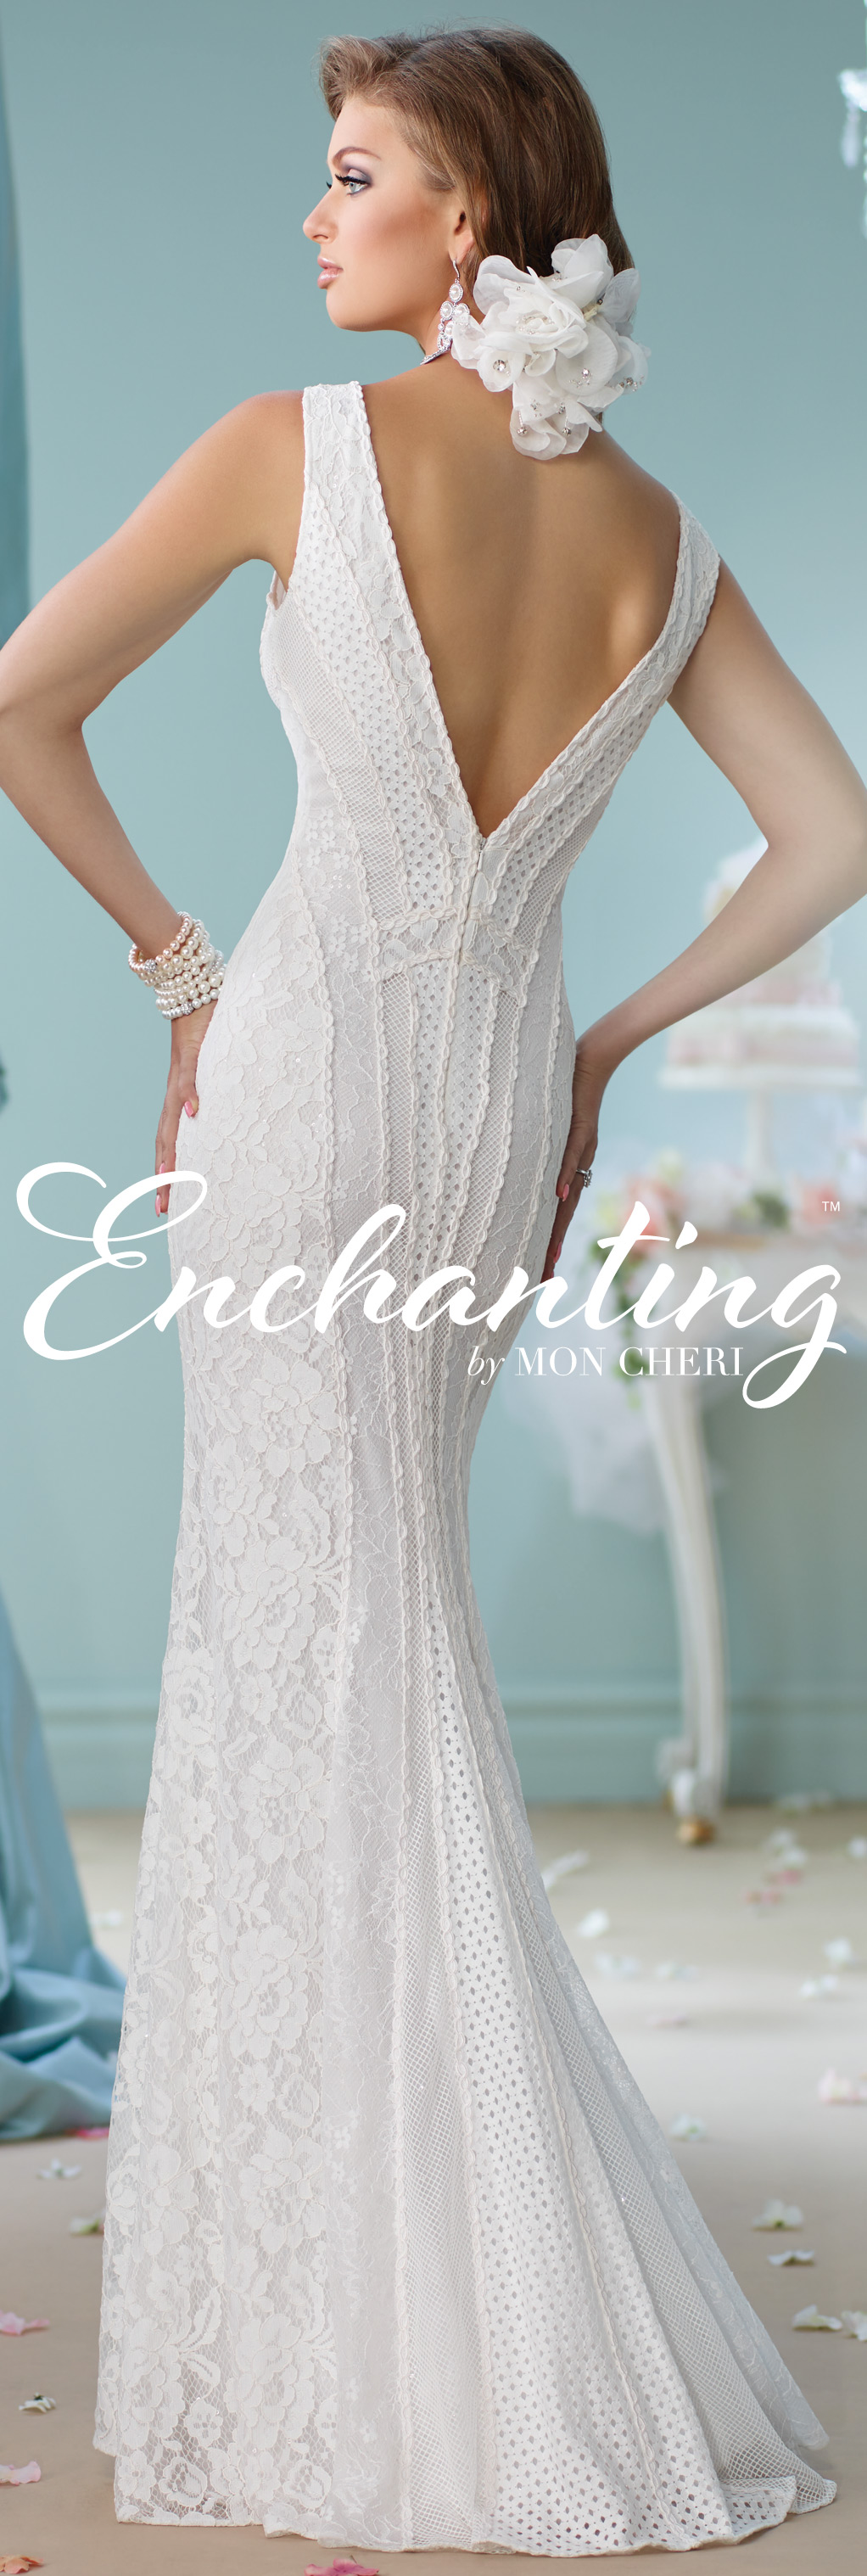 Modern wedding dresses by mon cheri enchanted wedding dress